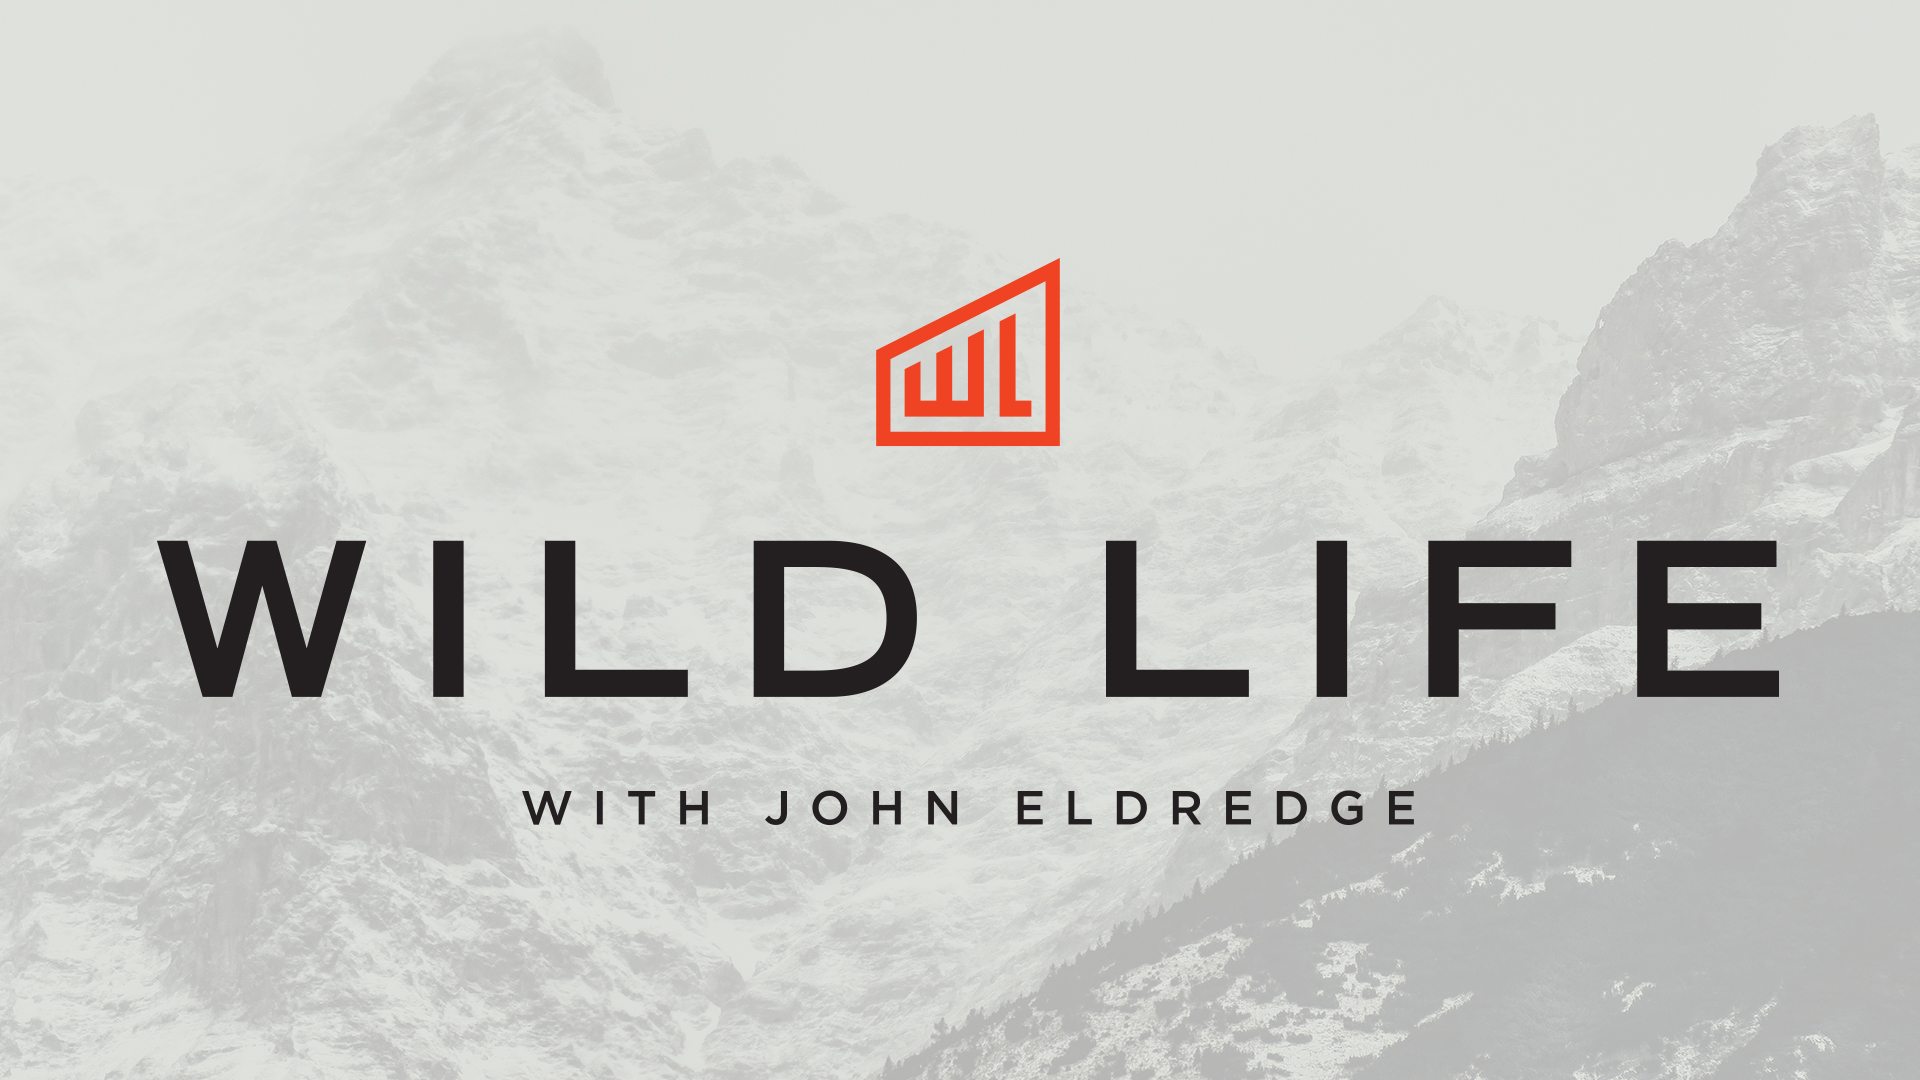 John Eldredge Wild At Heart Quotes Quotesgram: 10 Manly Ideas For Leading A Wild Life LifeGroup